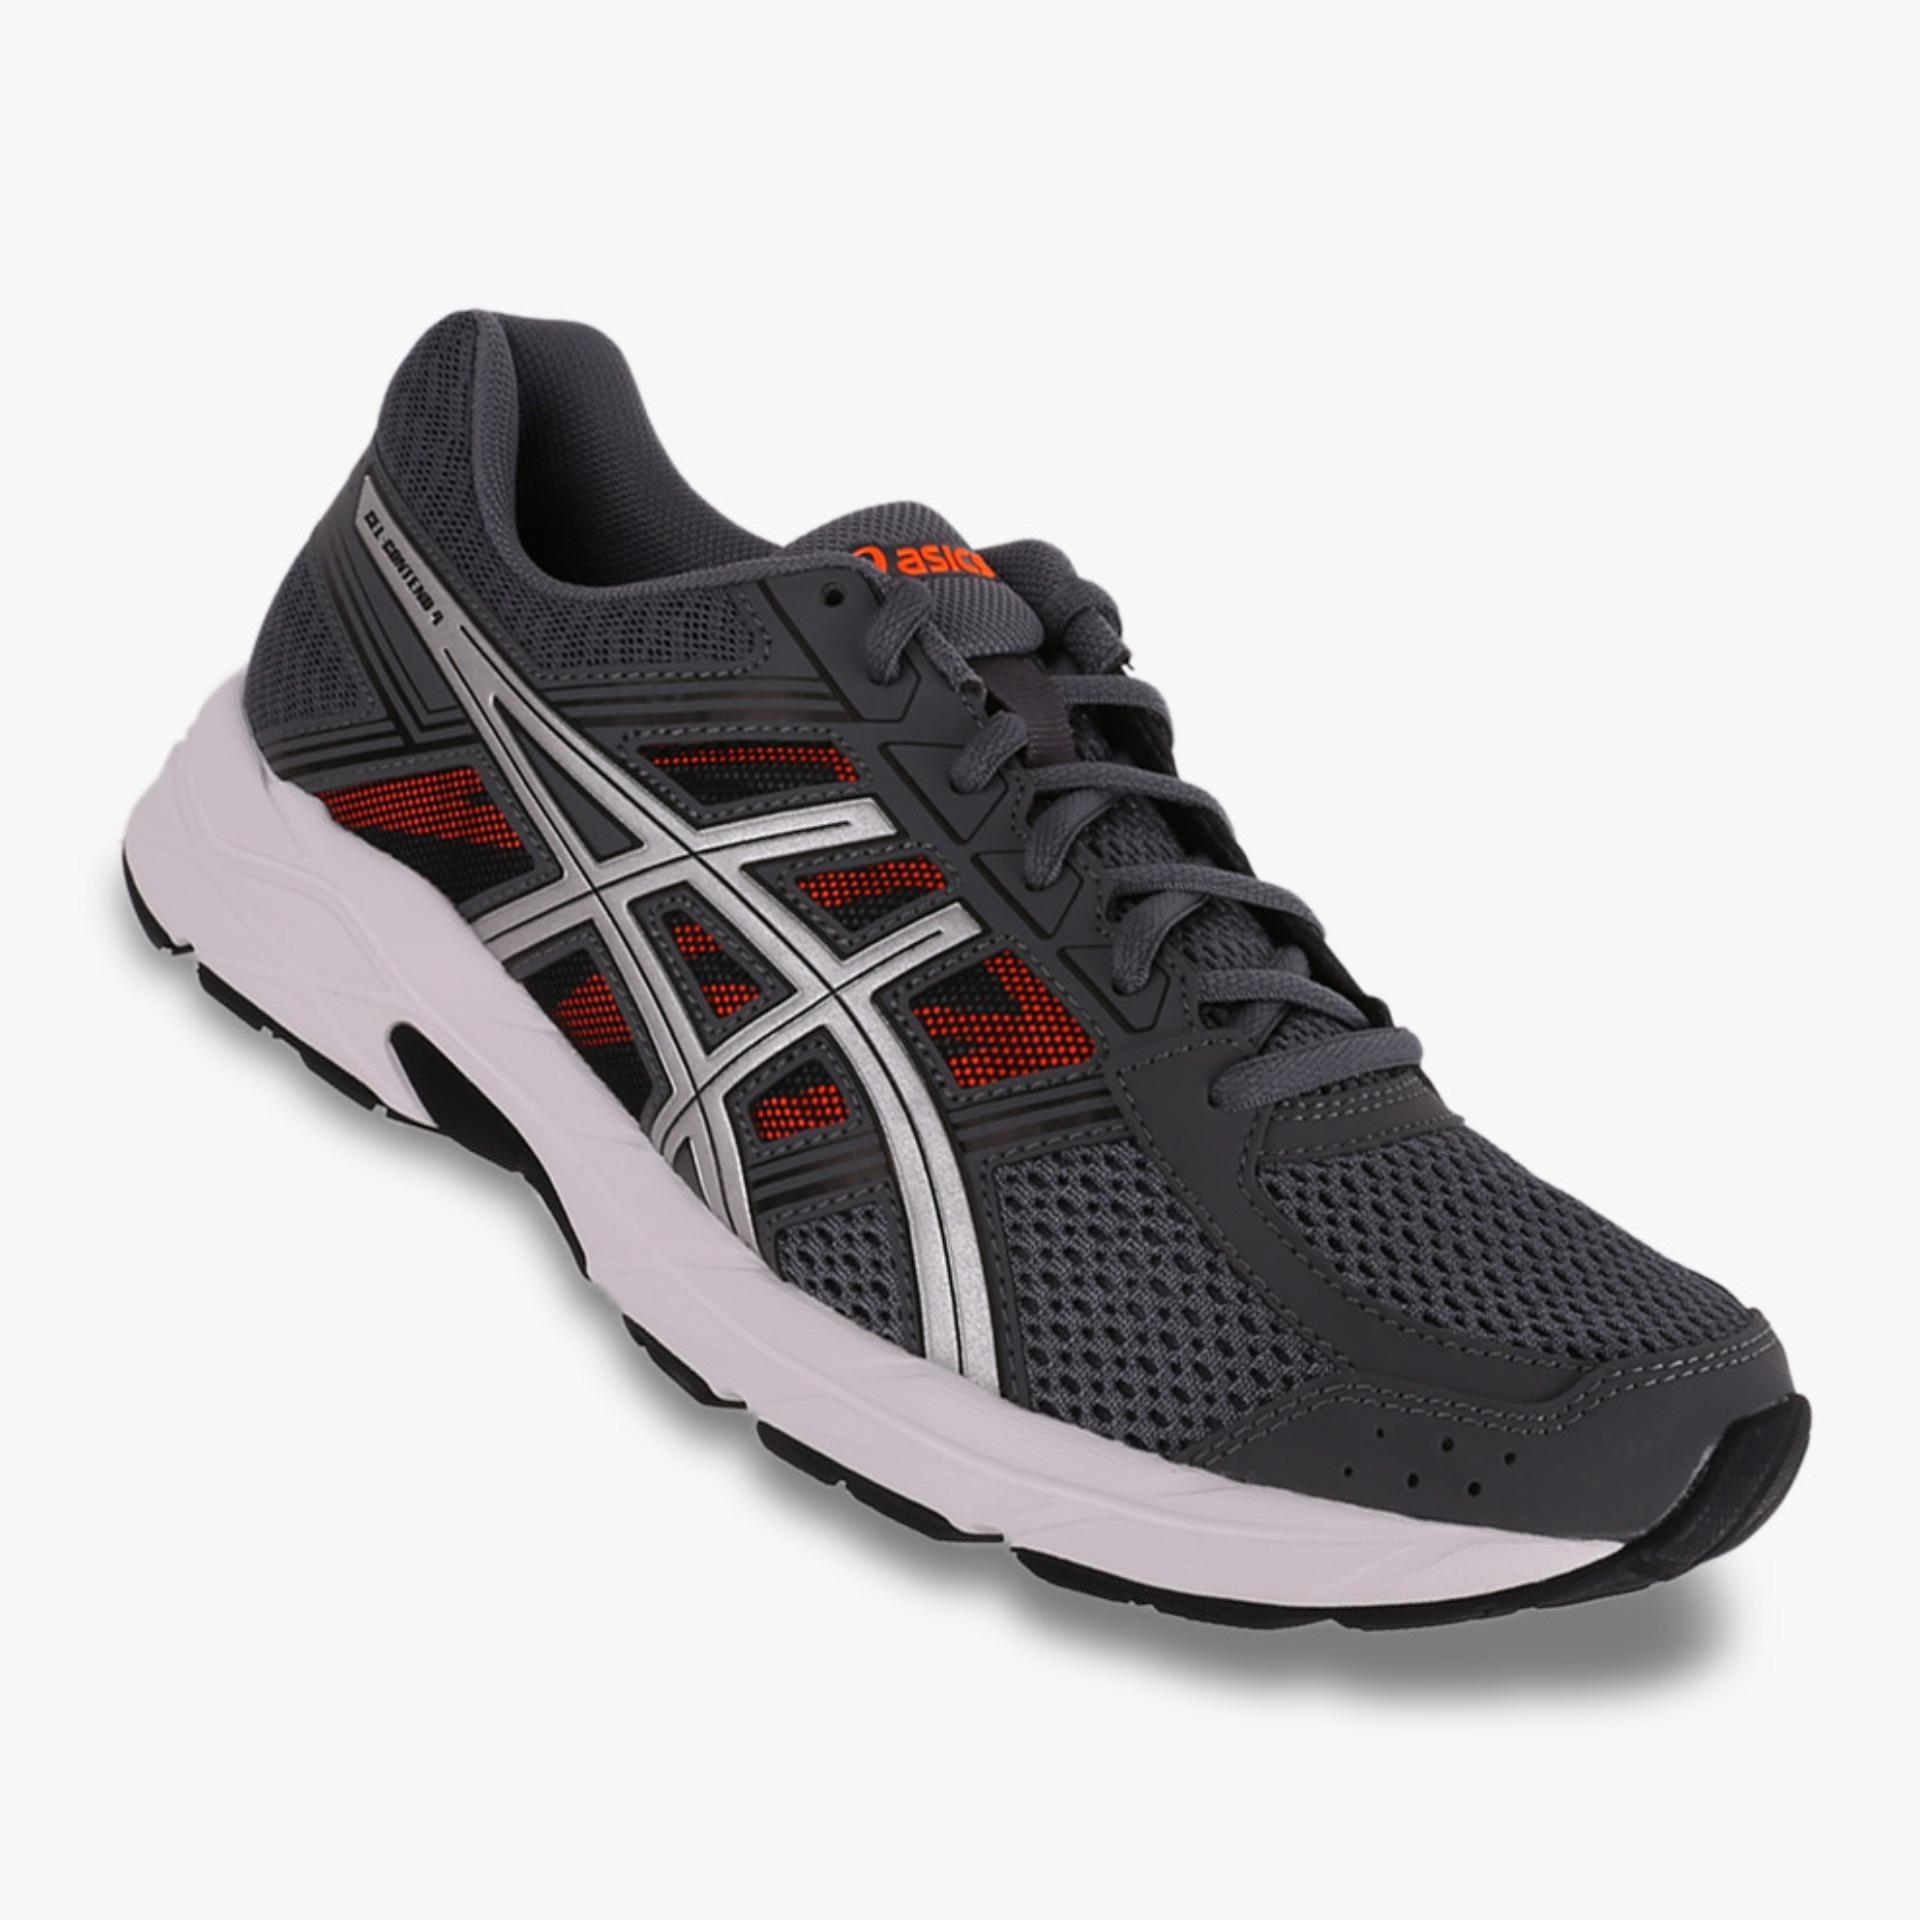 Asics Gel Contend 4 Men S Running Shoes Standard Wide Abu Abu Asli